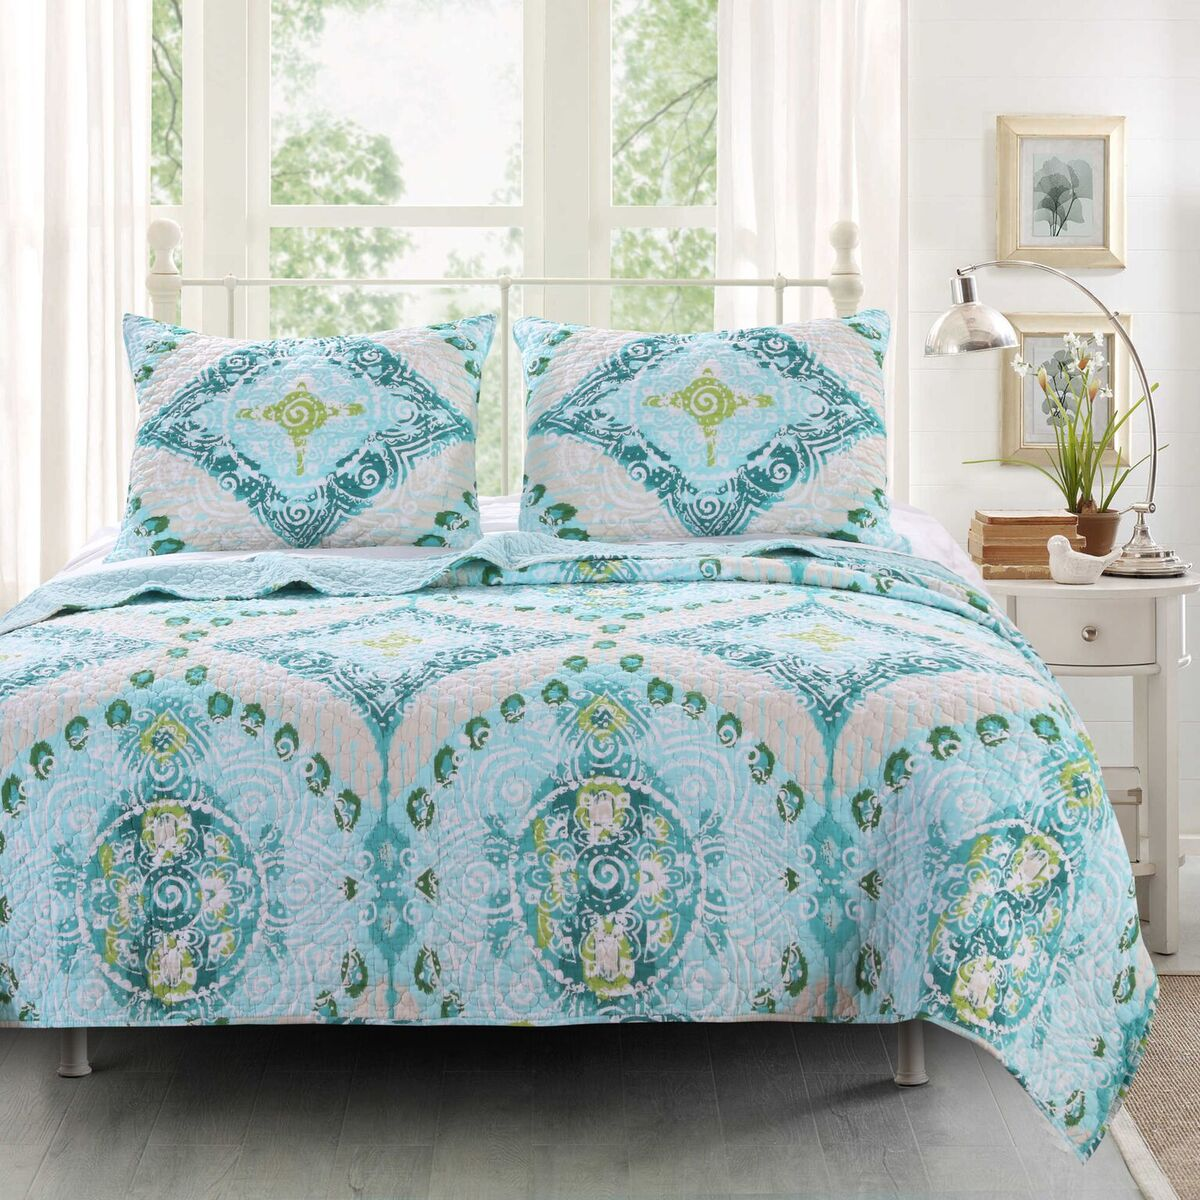 Cascade Multi Quilt Set, 2-Piece Twin